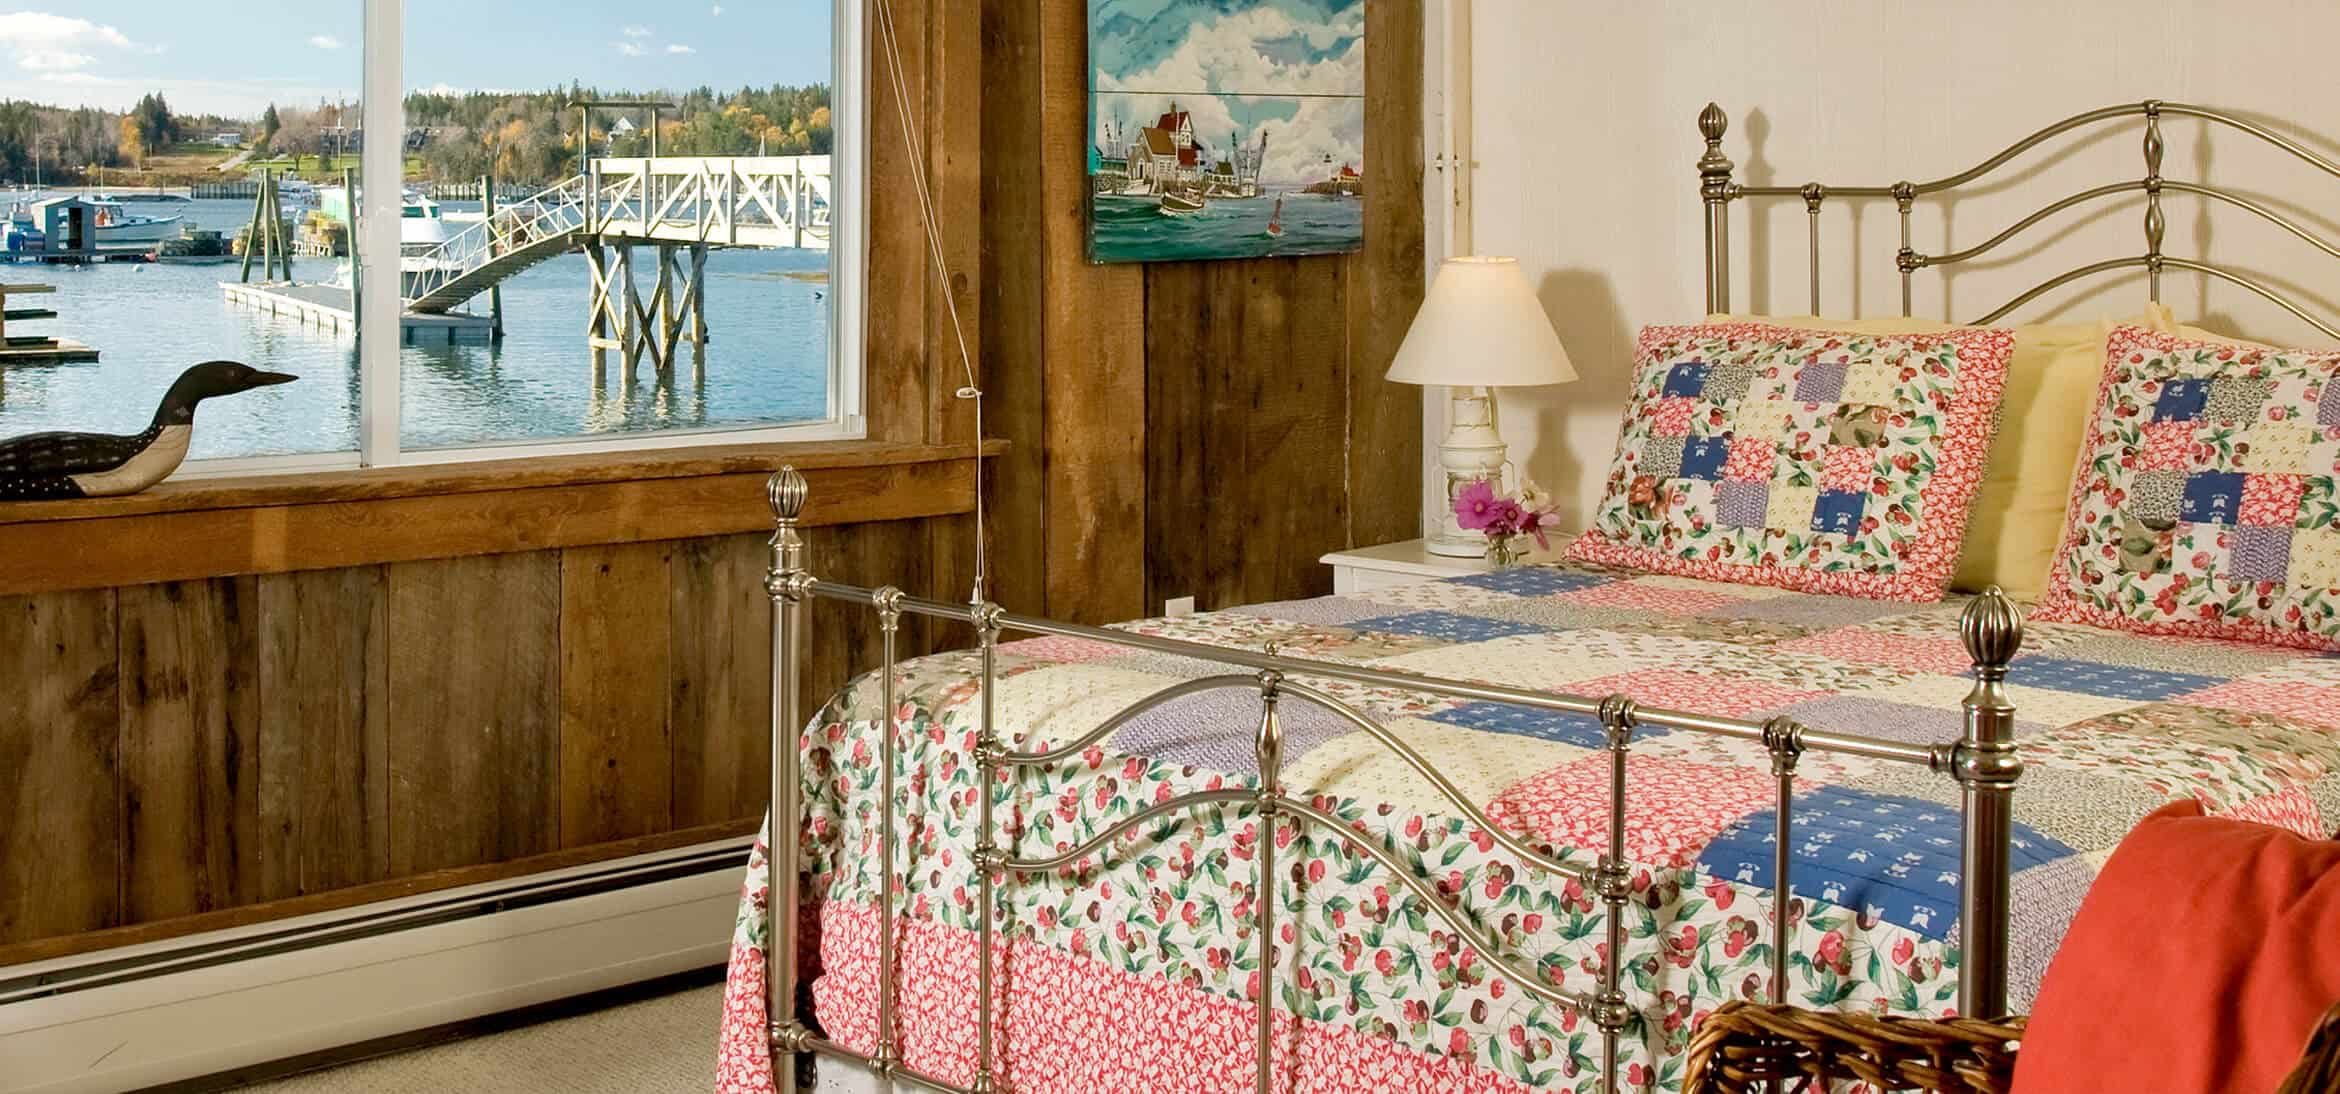 guest room in Maine with quilt